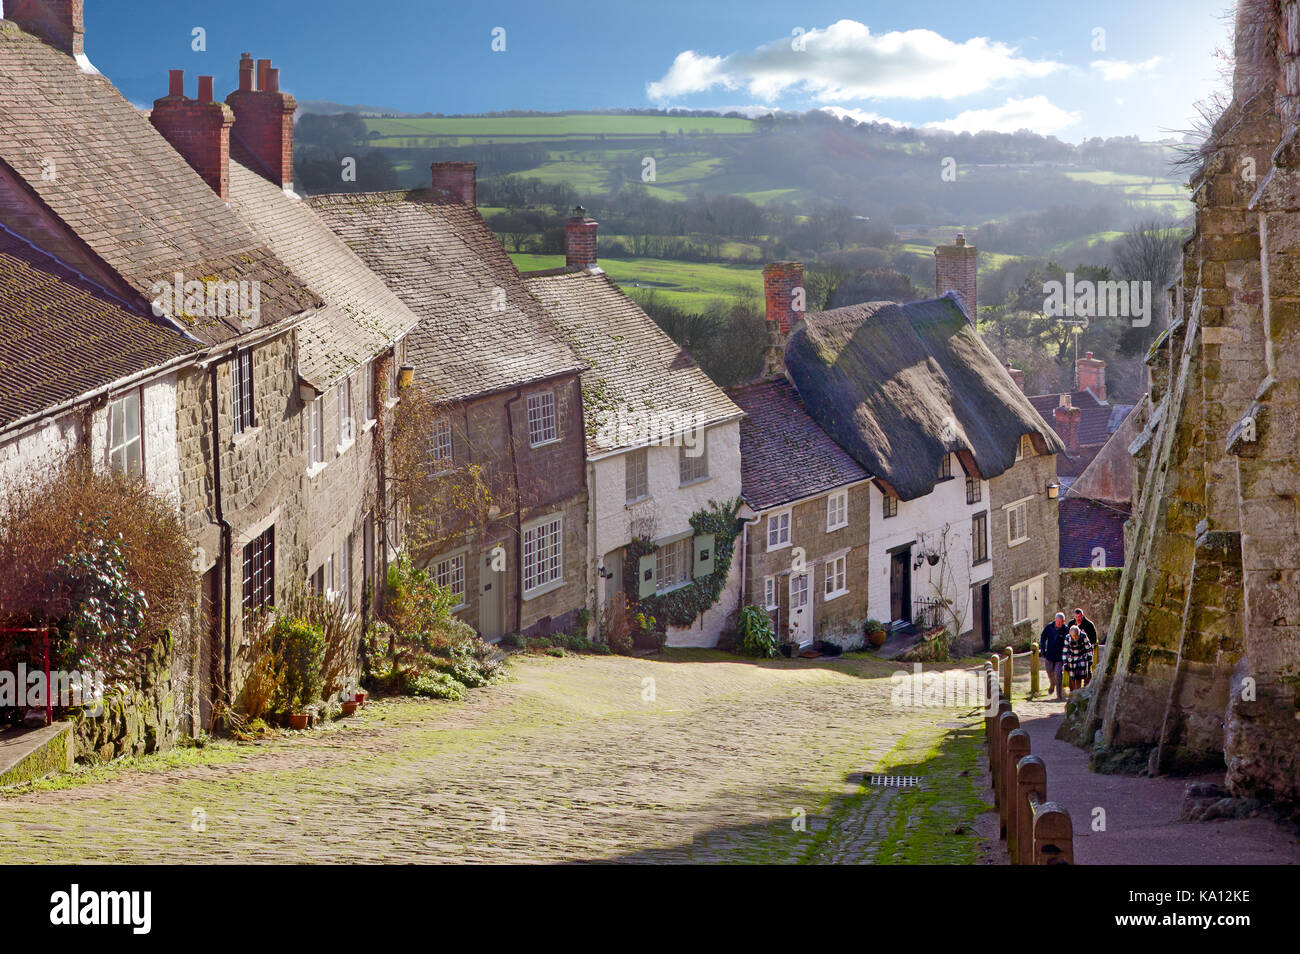 Hovis advert Gold Hill, Dorset - Stock Image